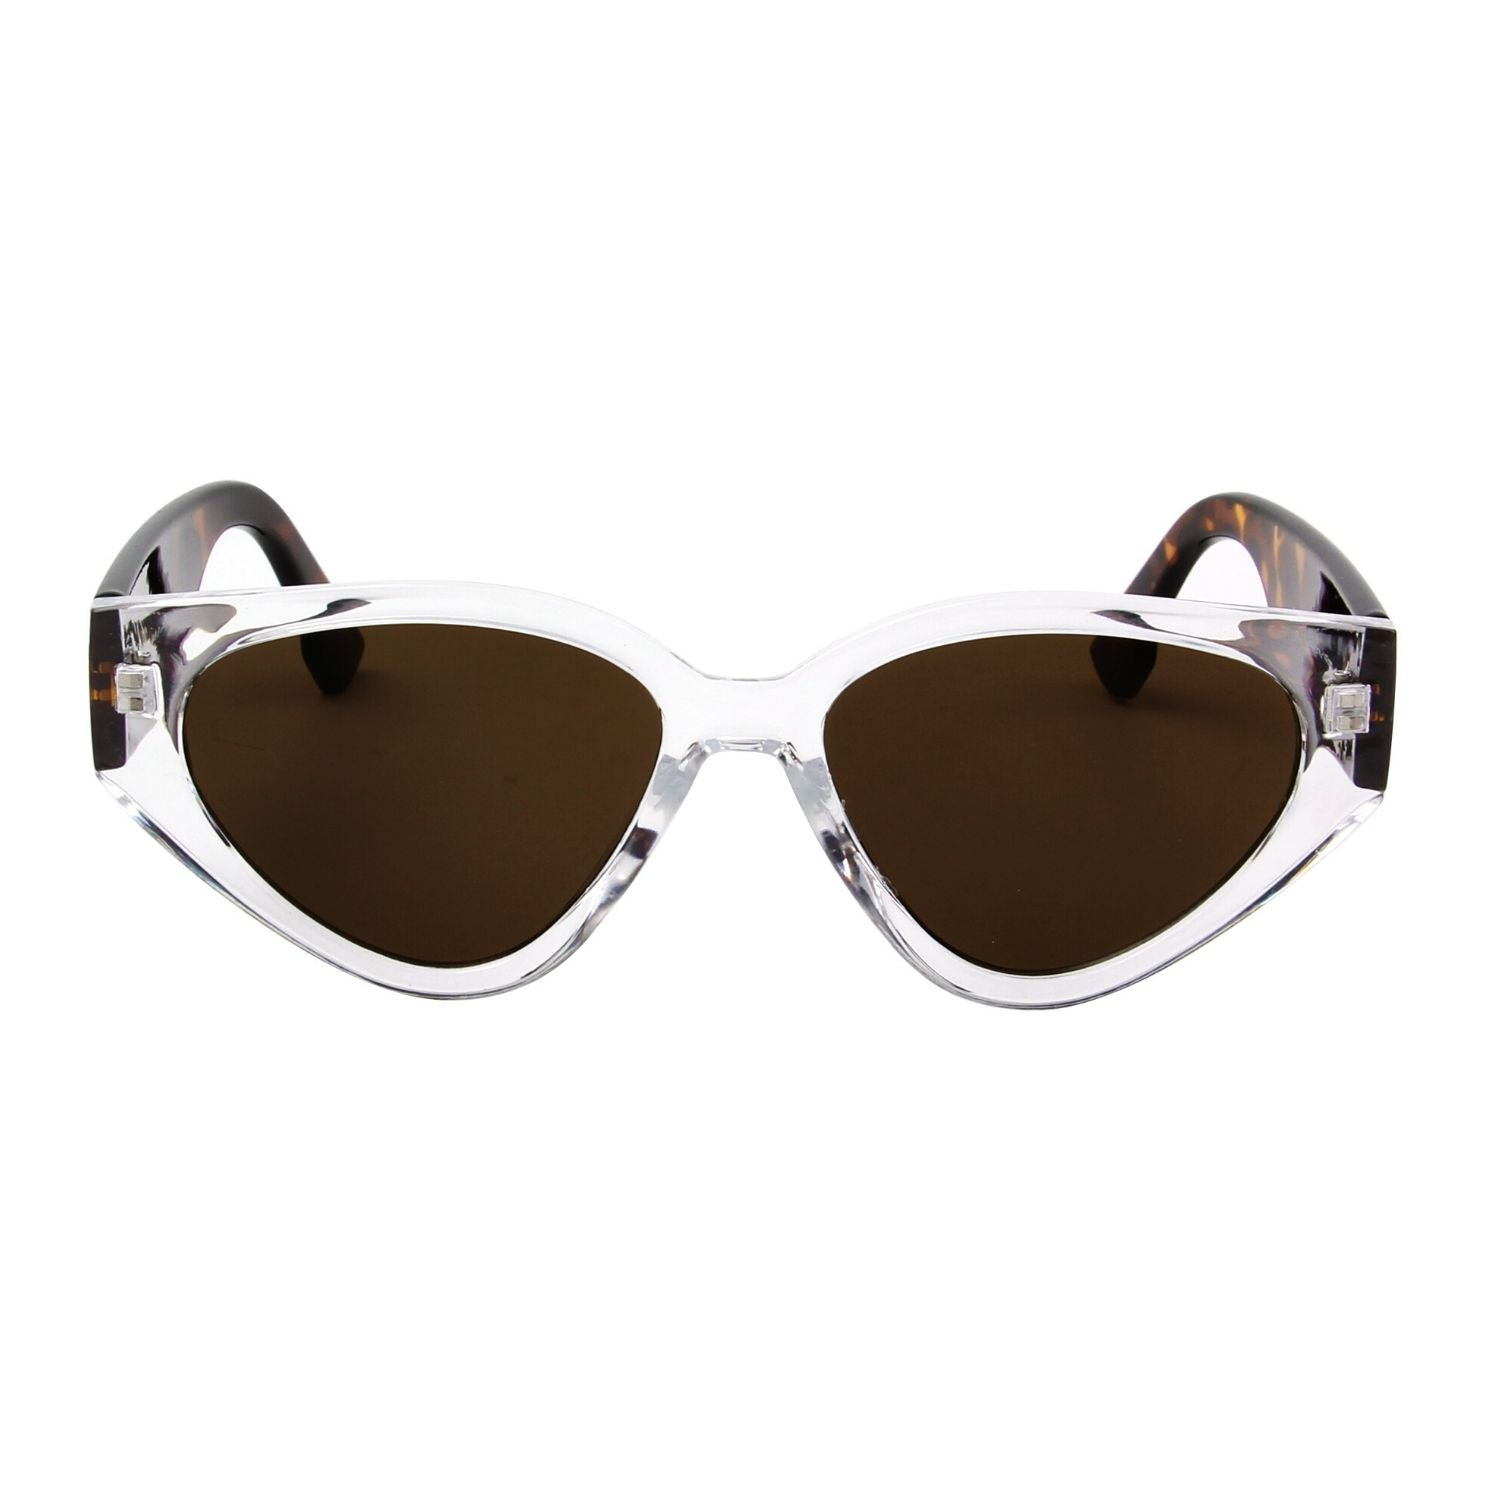 S1145 - Women Round Cat Eye Fashion Sunglasses